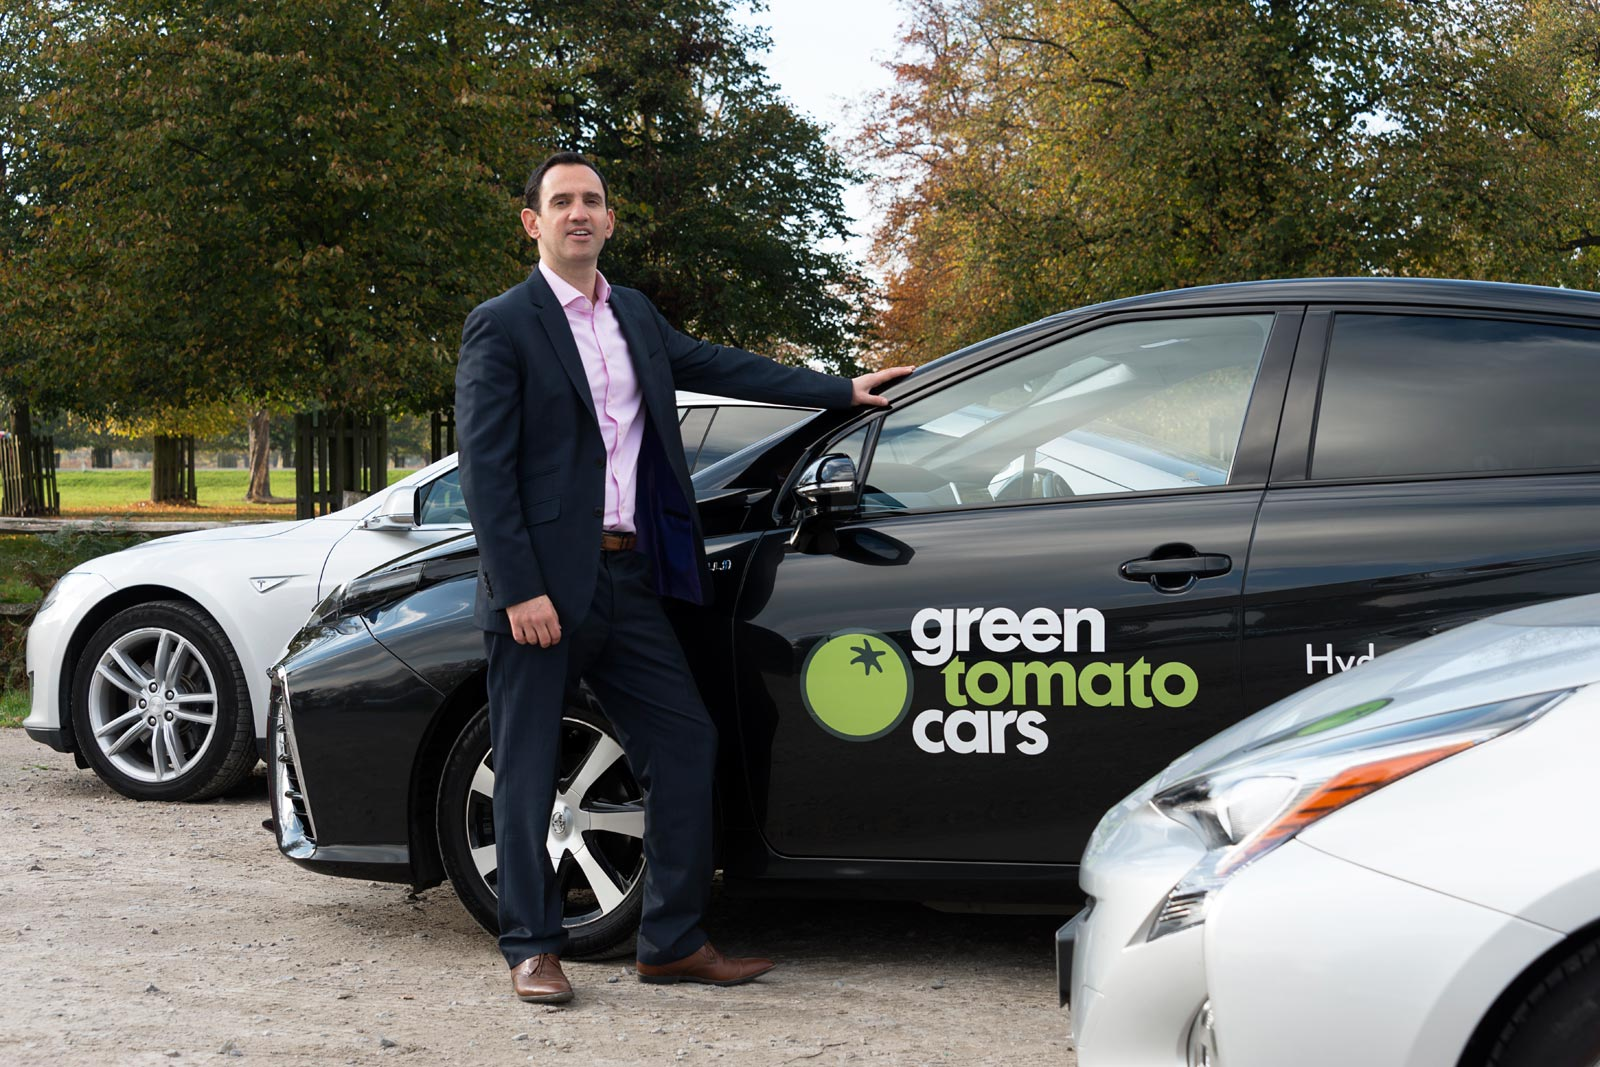 Jonny Goldstone MD and Original Co-Founder of Green Tomato Cars